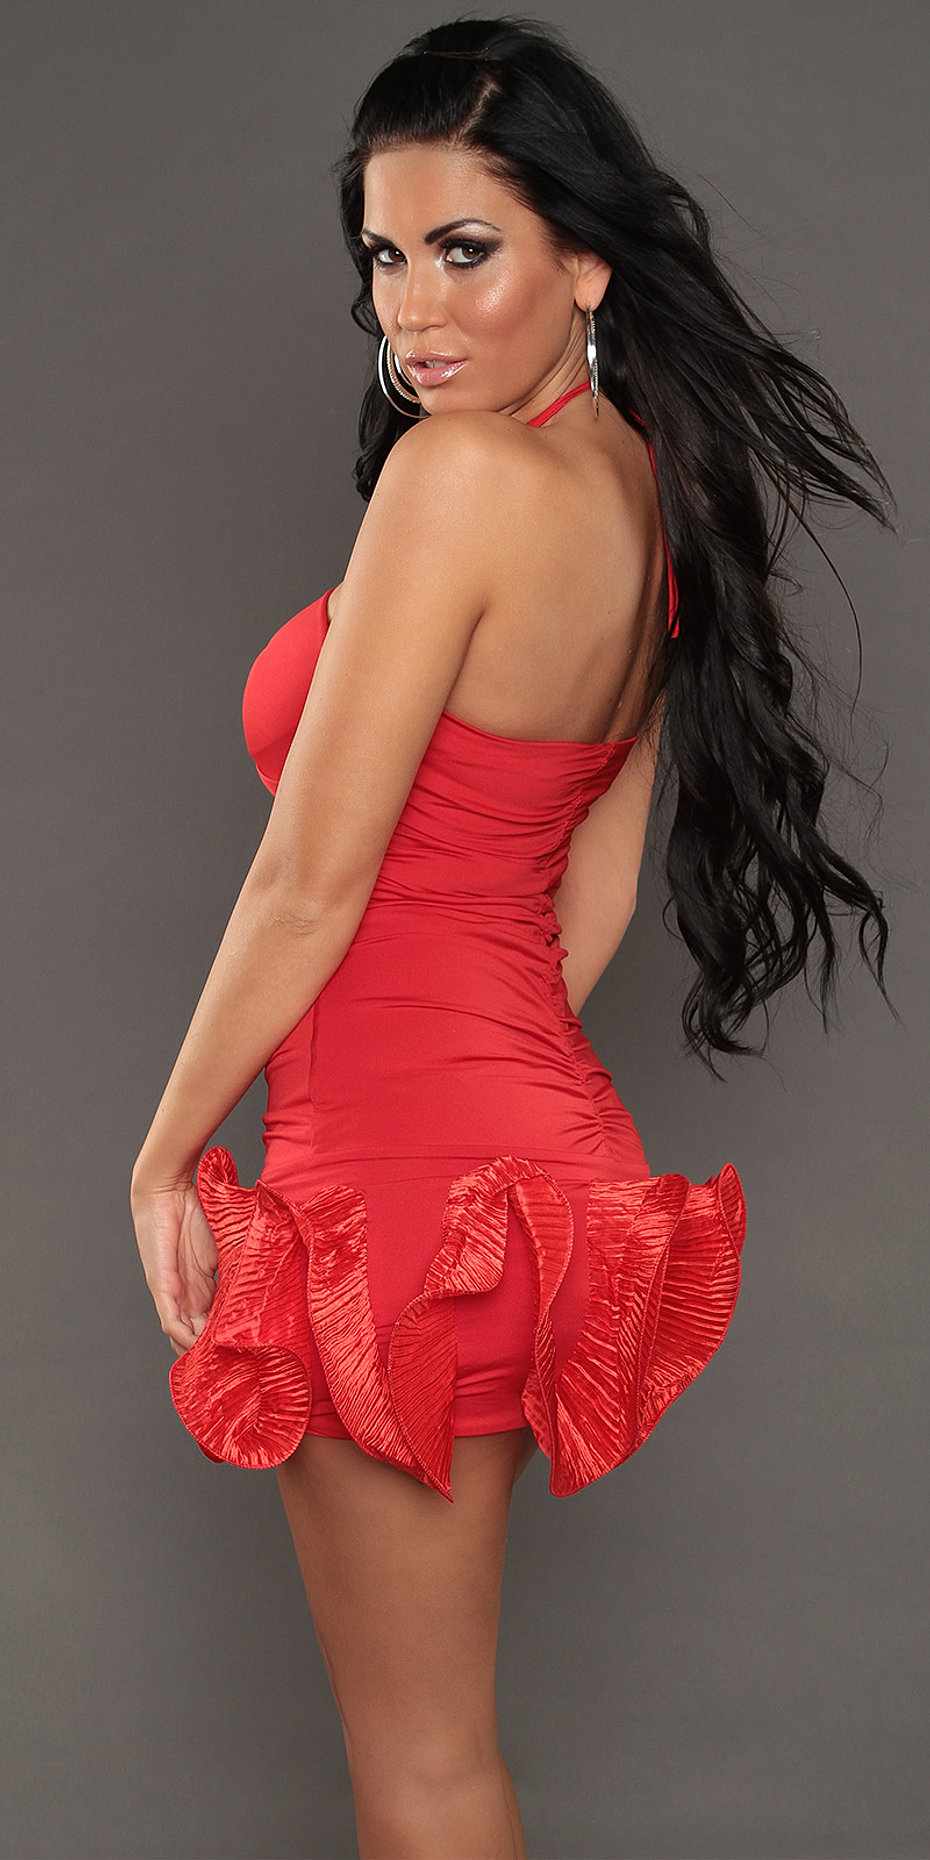 aaParty-minidress_with_frills__Color_RED_Size_SM_0000ISF2170_ROT_21.jpg